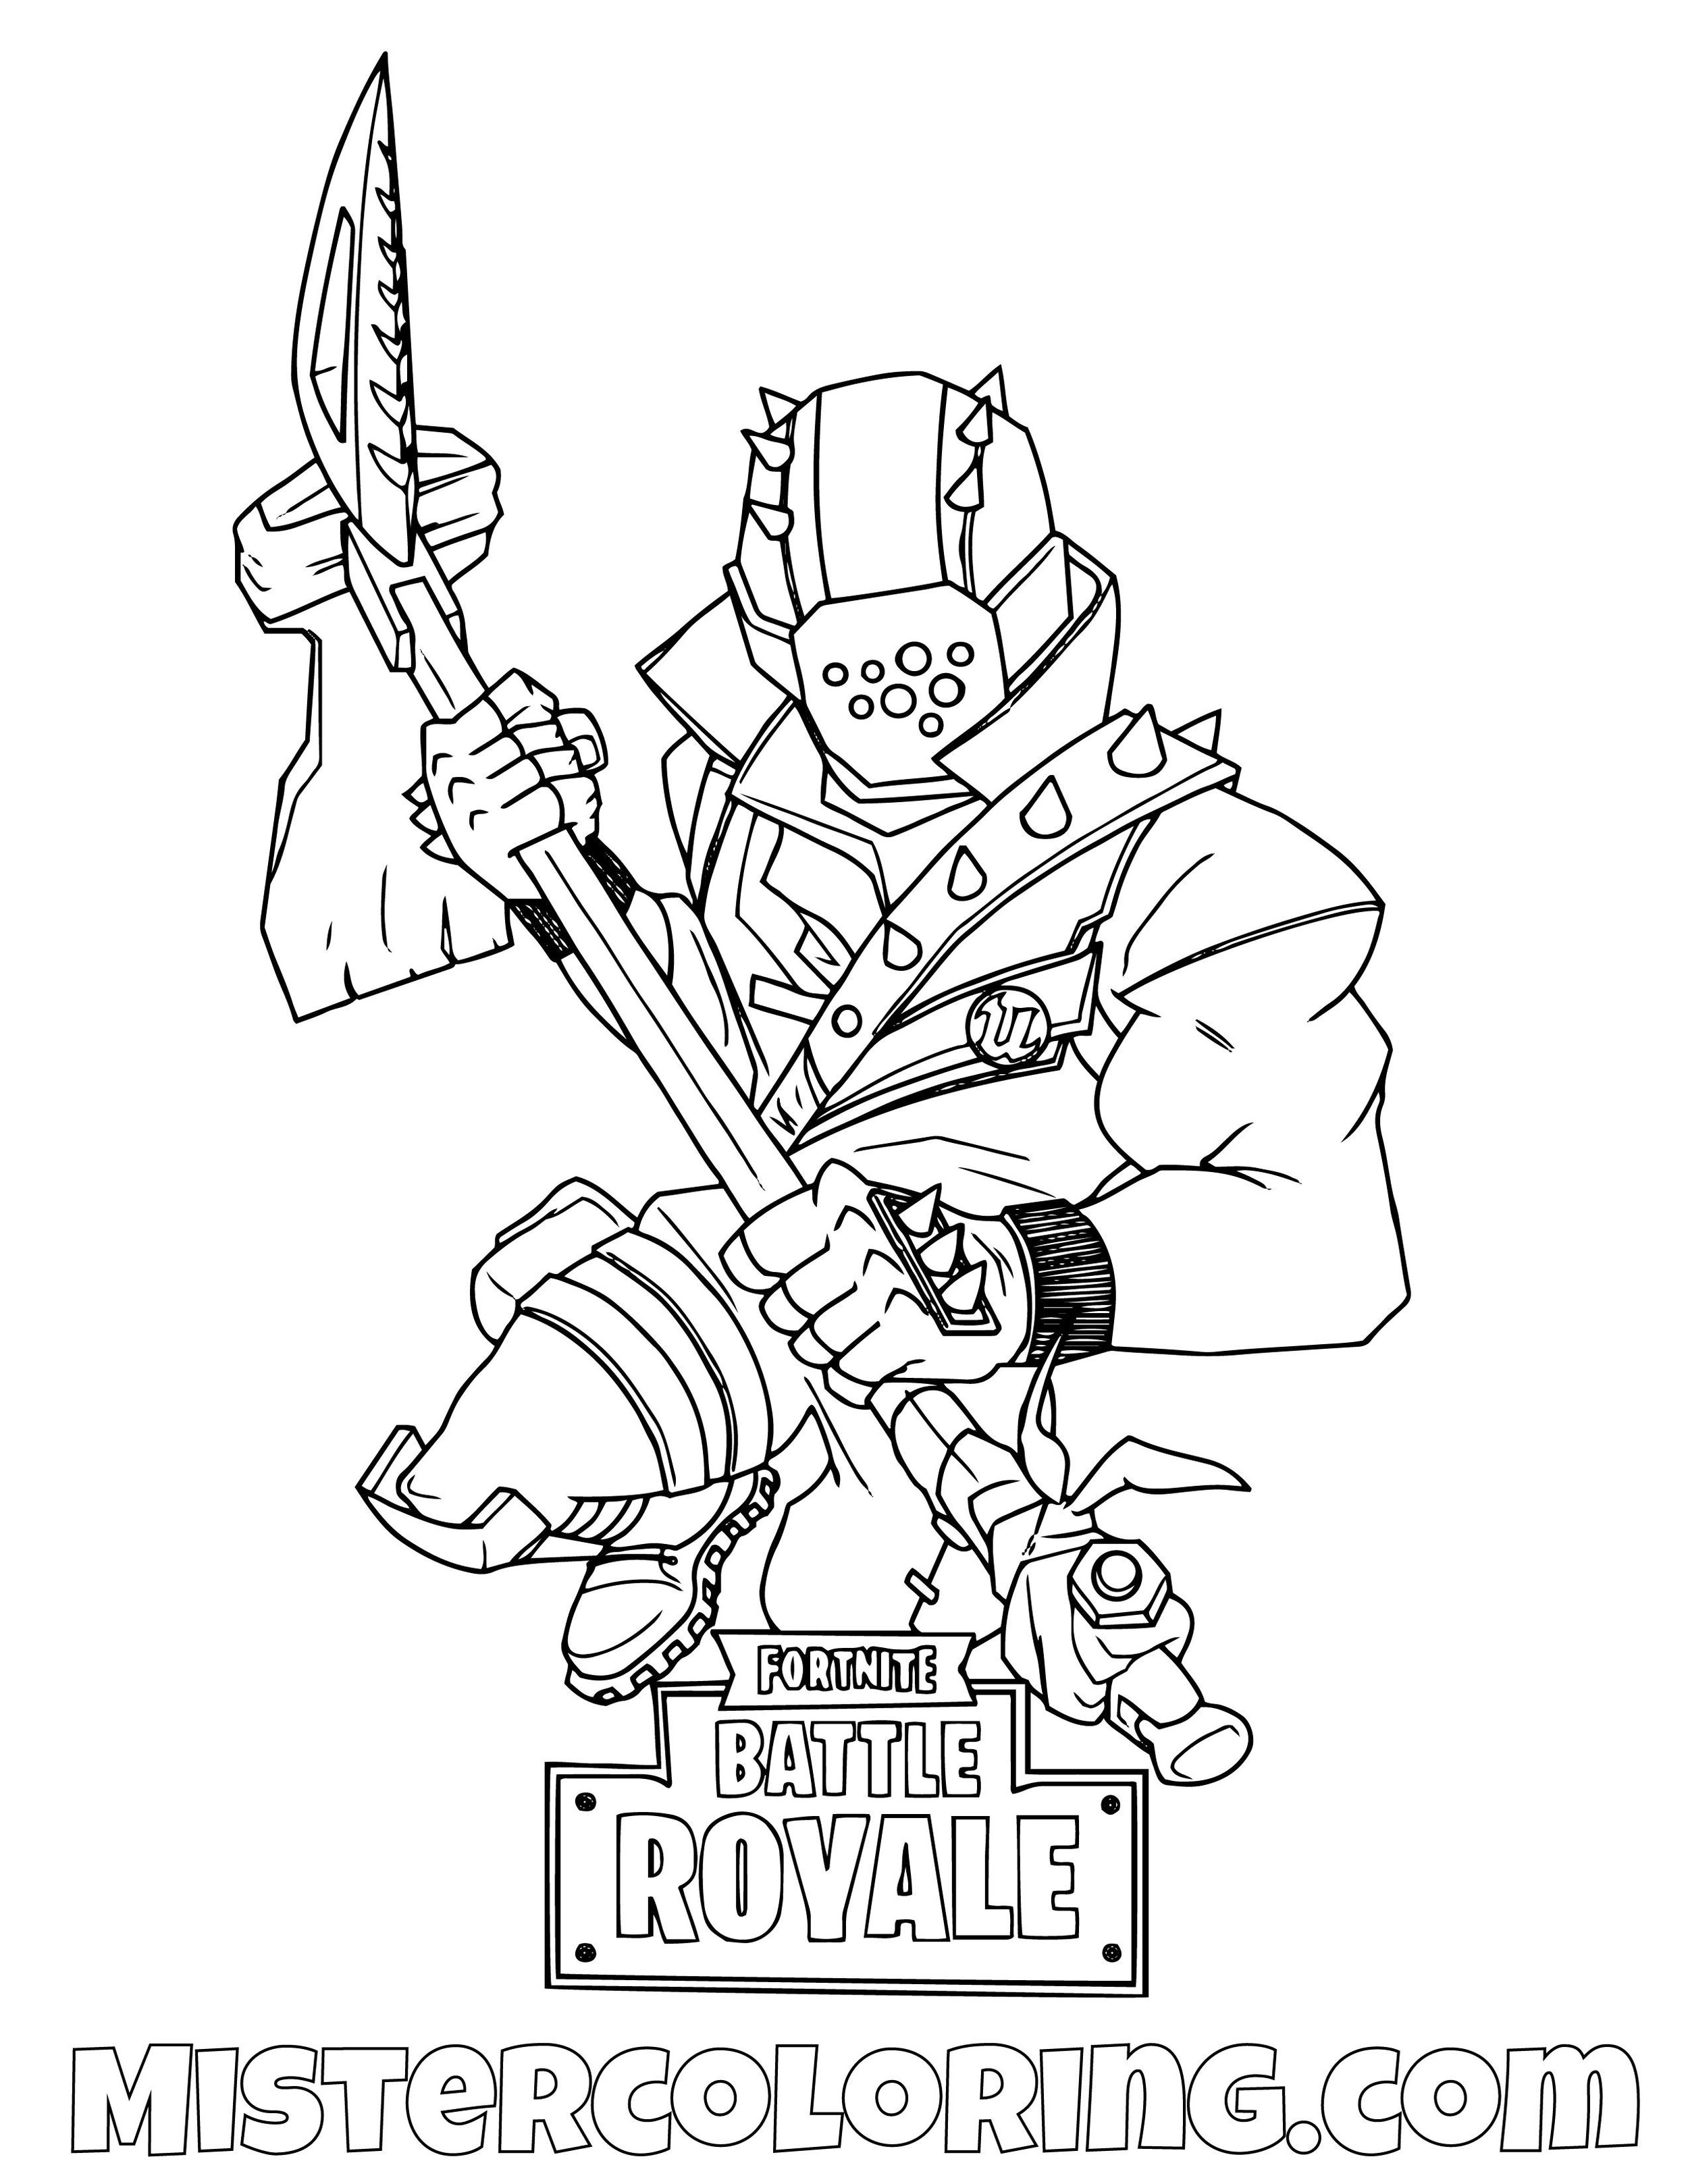 Rust Lord Pickaxe Fortnite Coloring Page